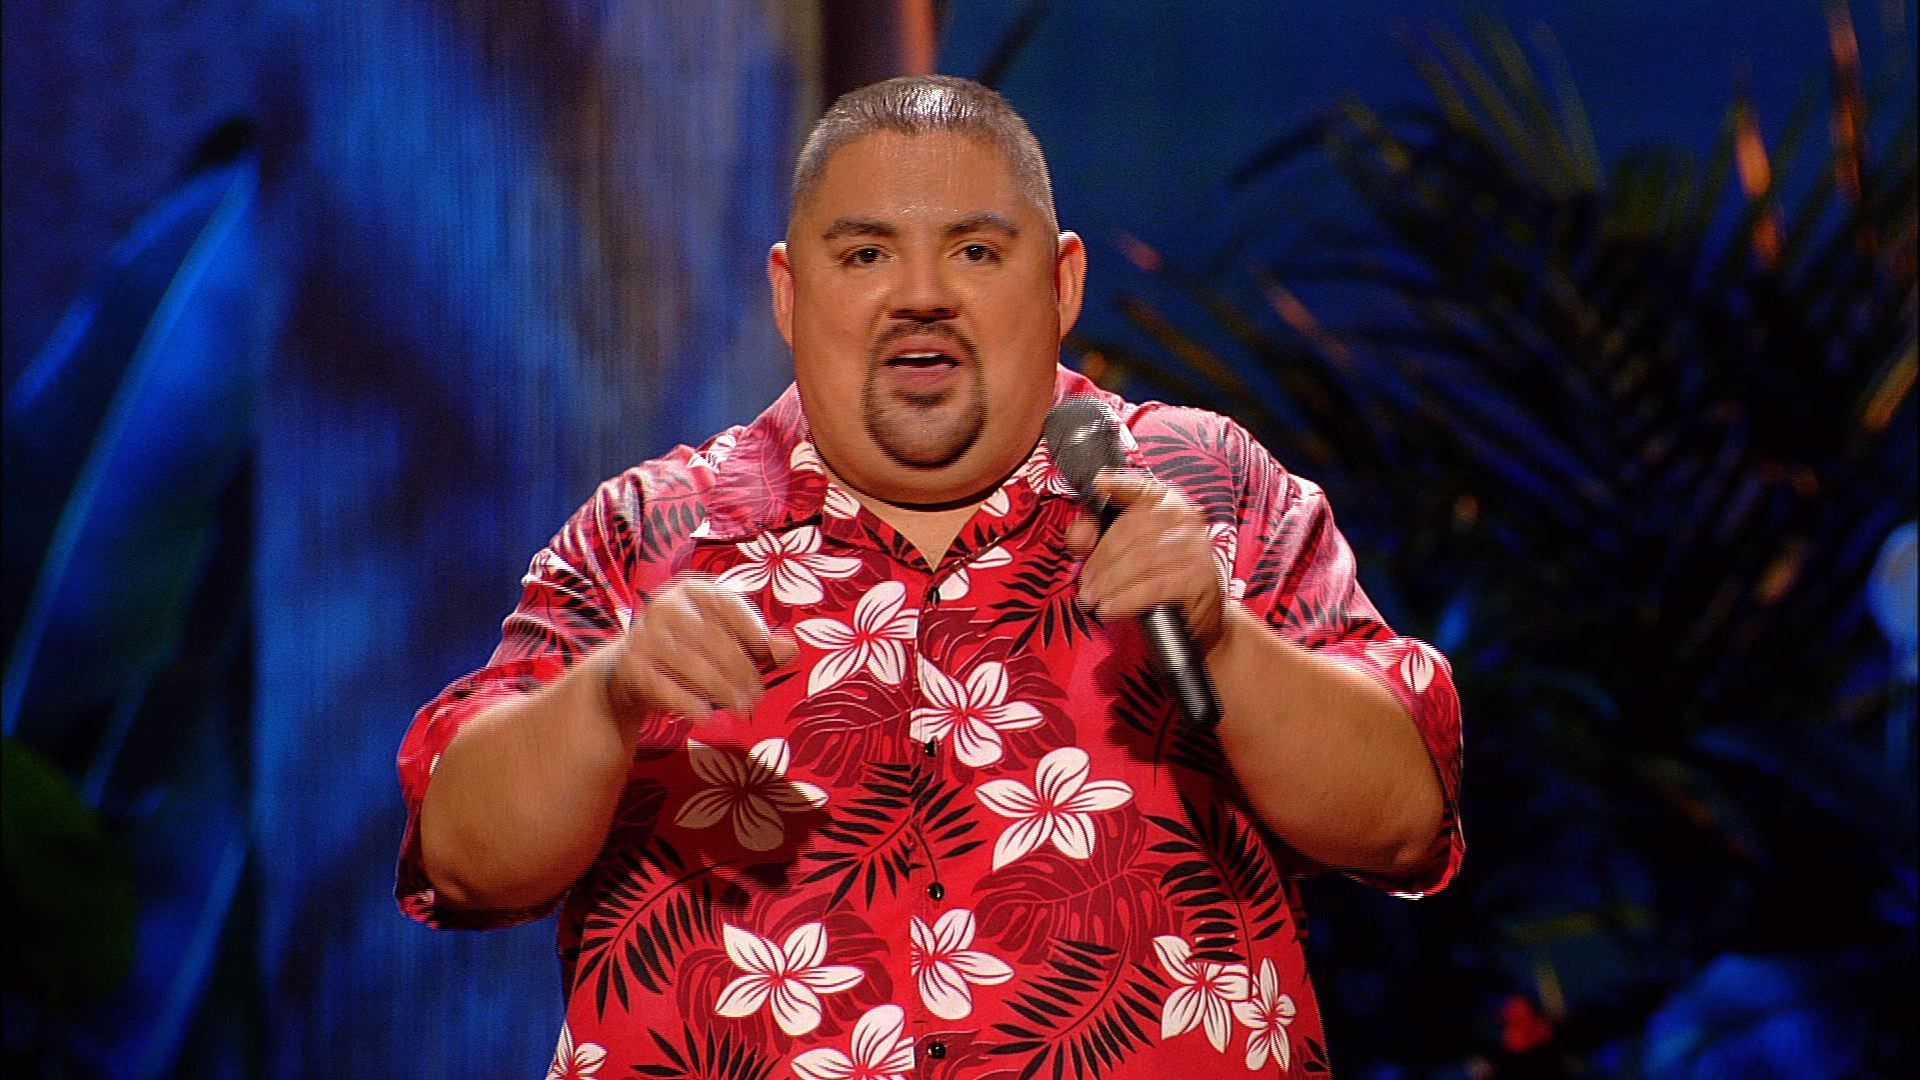 Gabriel Iglesias And His Girlfriend 2013 - Viewing Gallery